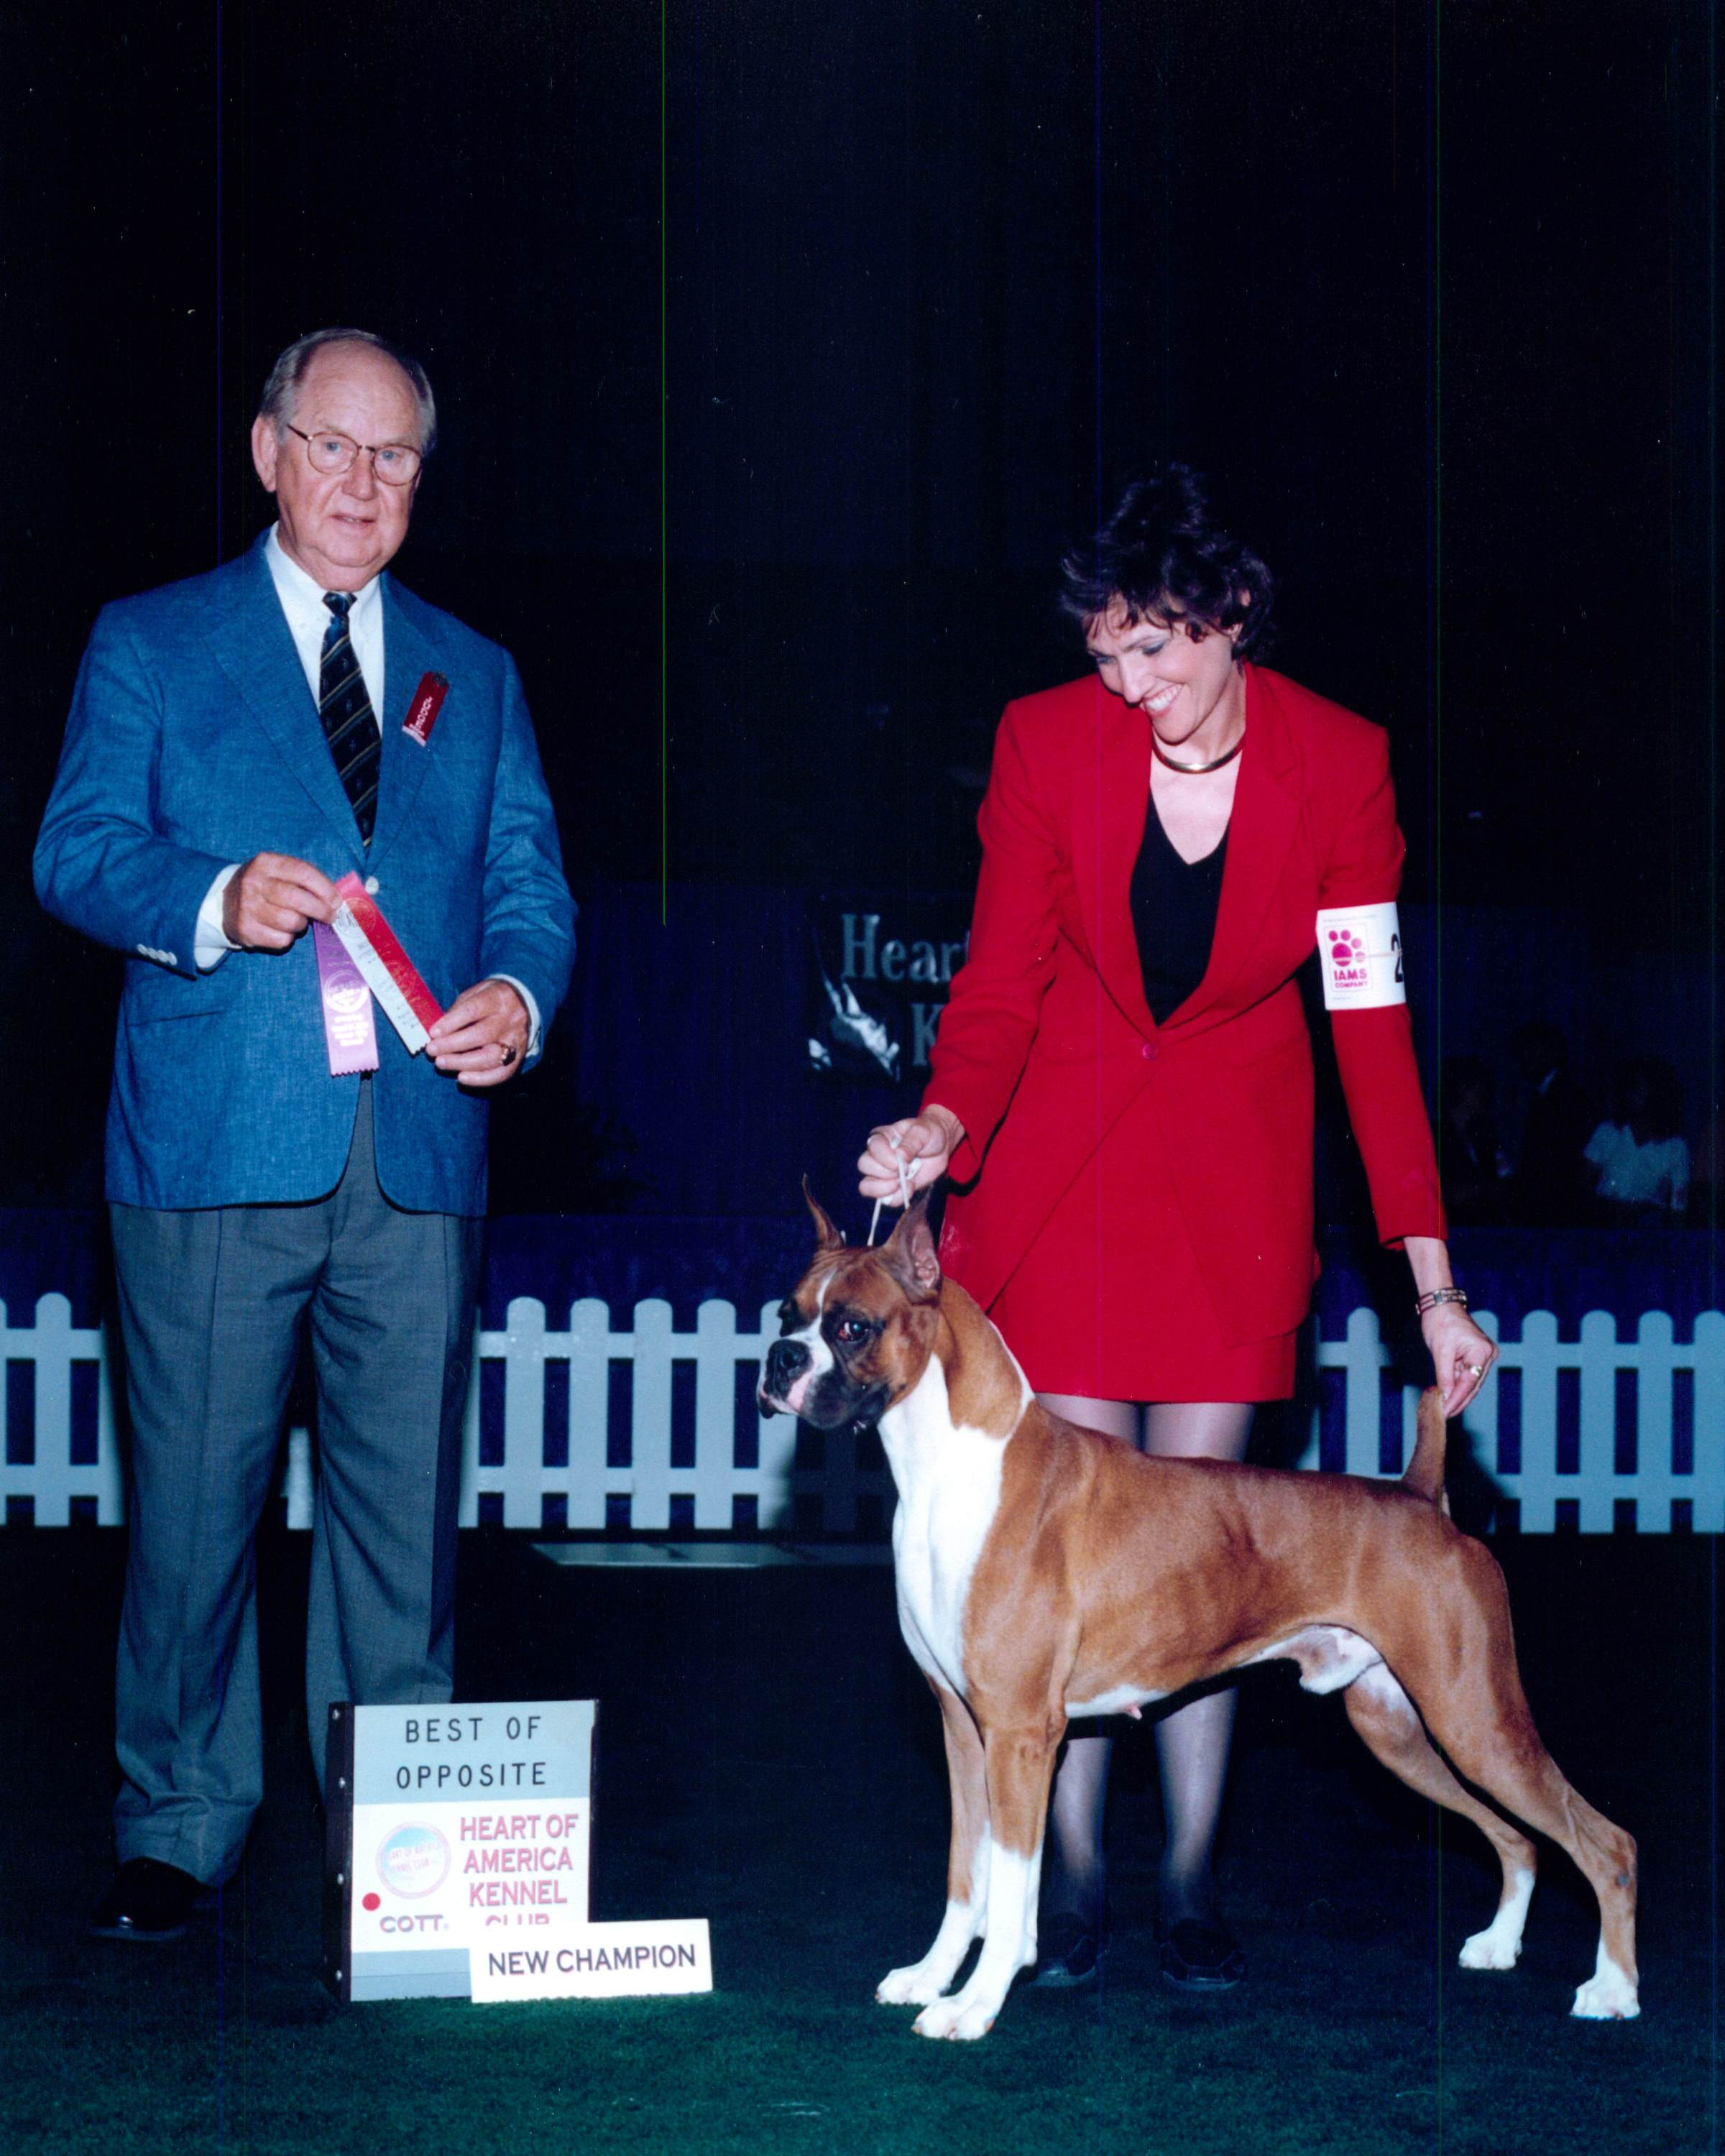 Best of Opposite Sex & Winners Dog @ 2000 Specialty Show #2